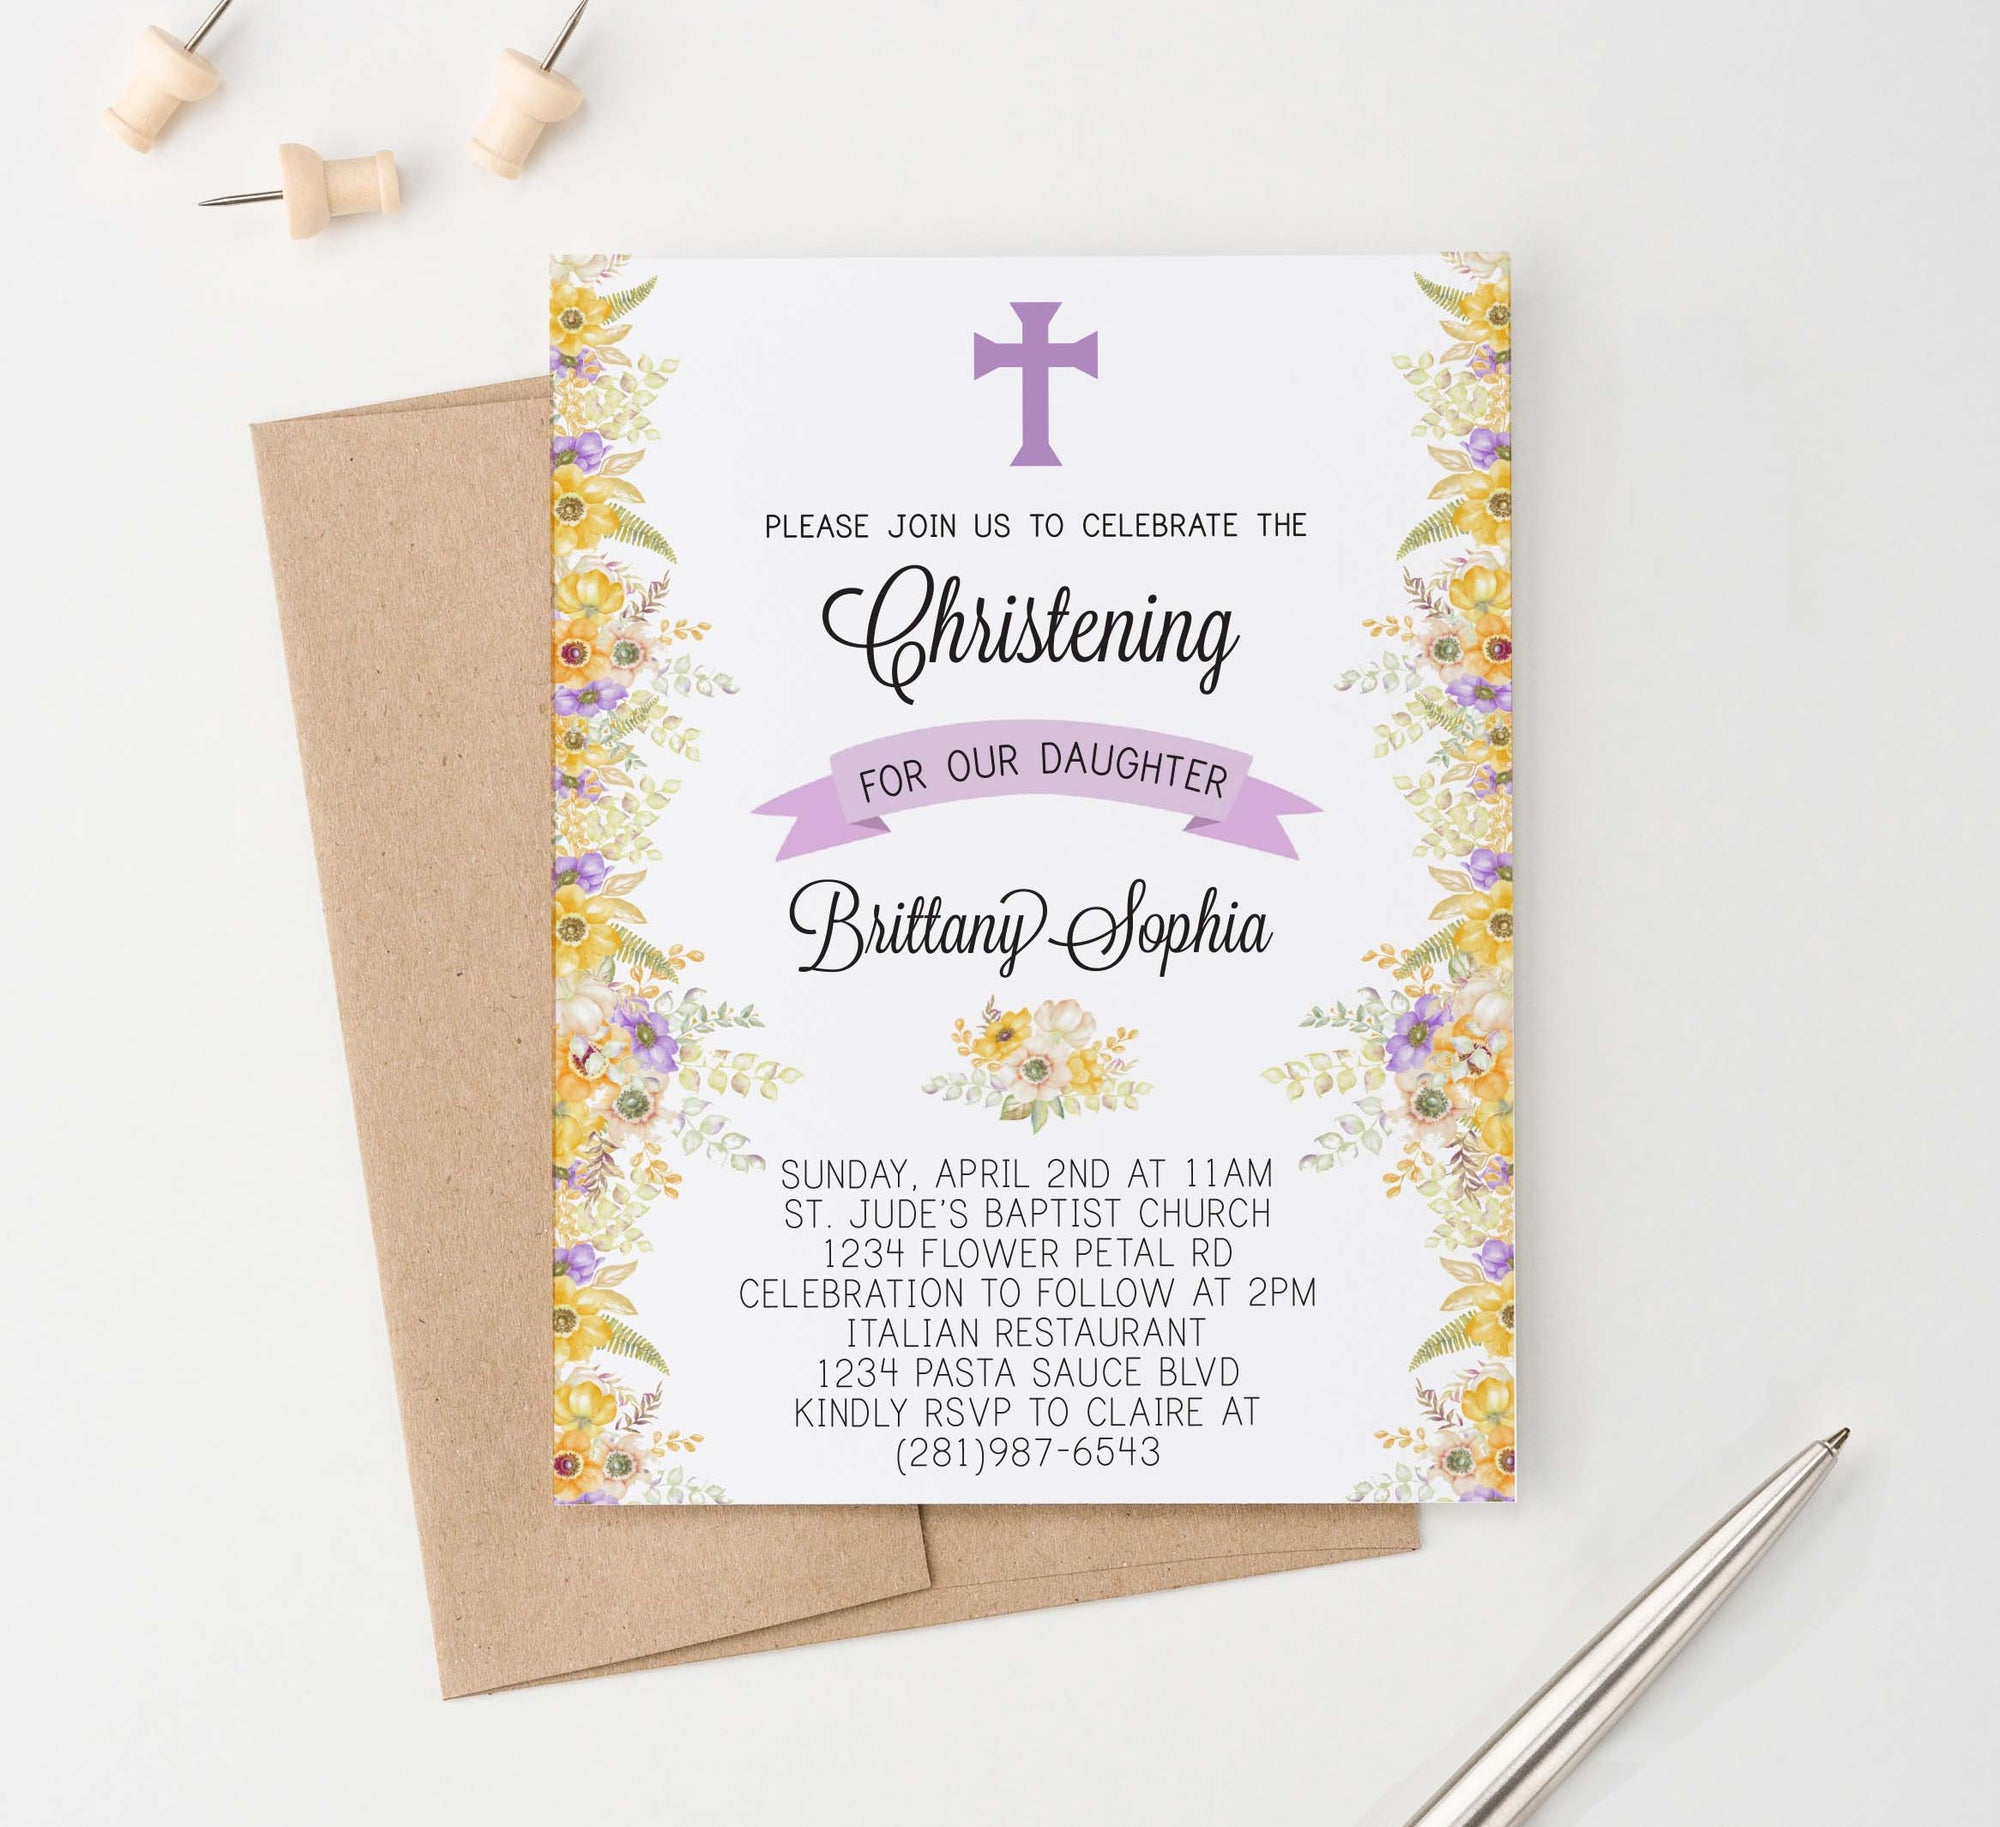 CI014 personalized christening invites with yellow and purple florals elegant